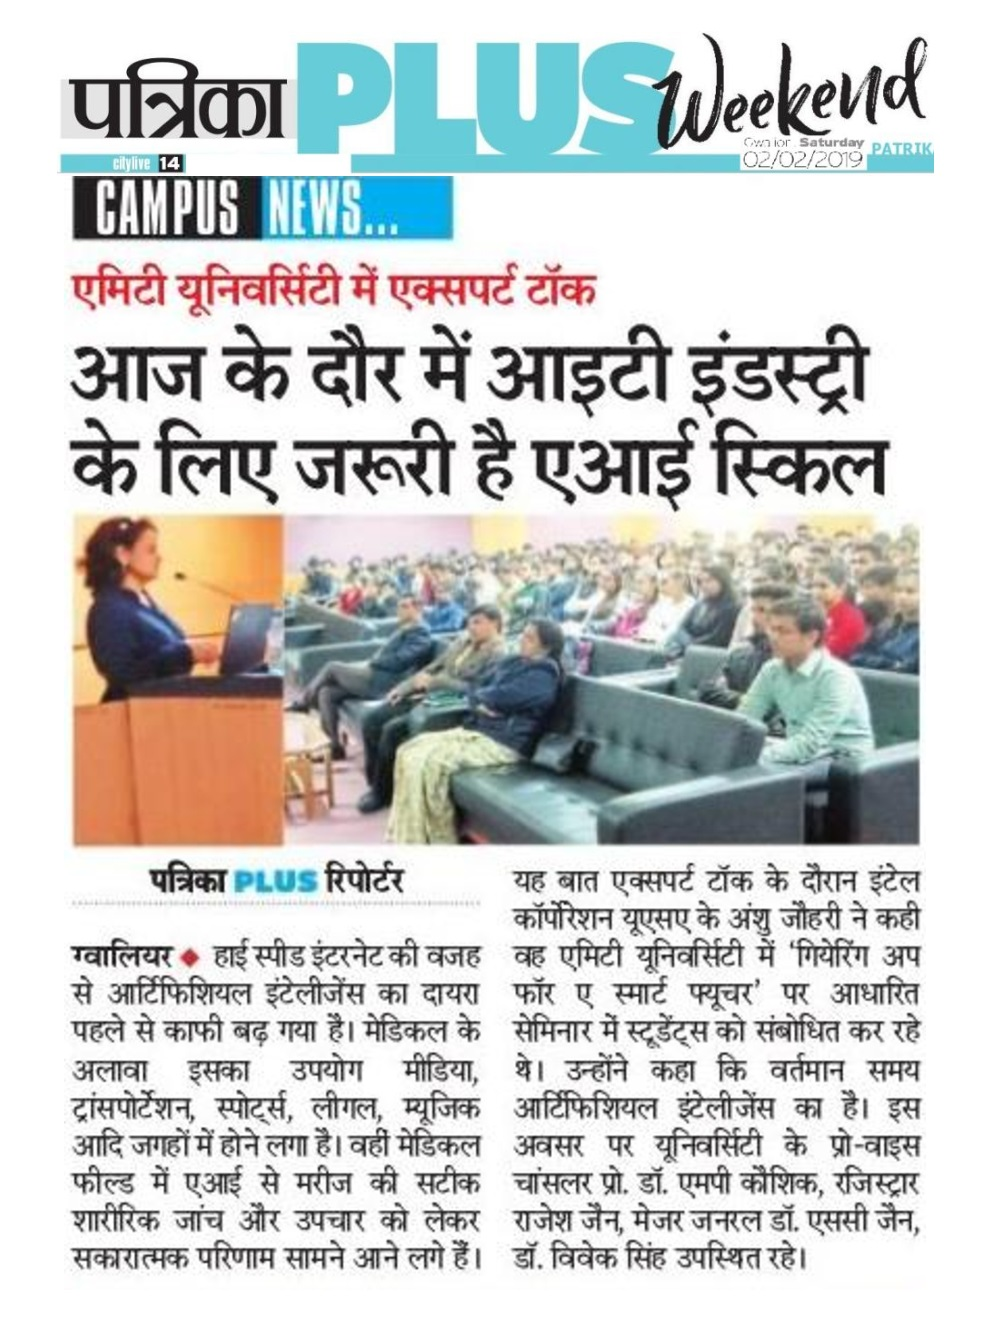 Patrika-2.2.2019-AUMP-Expert Talk-Gearing up for a smart future-Amity